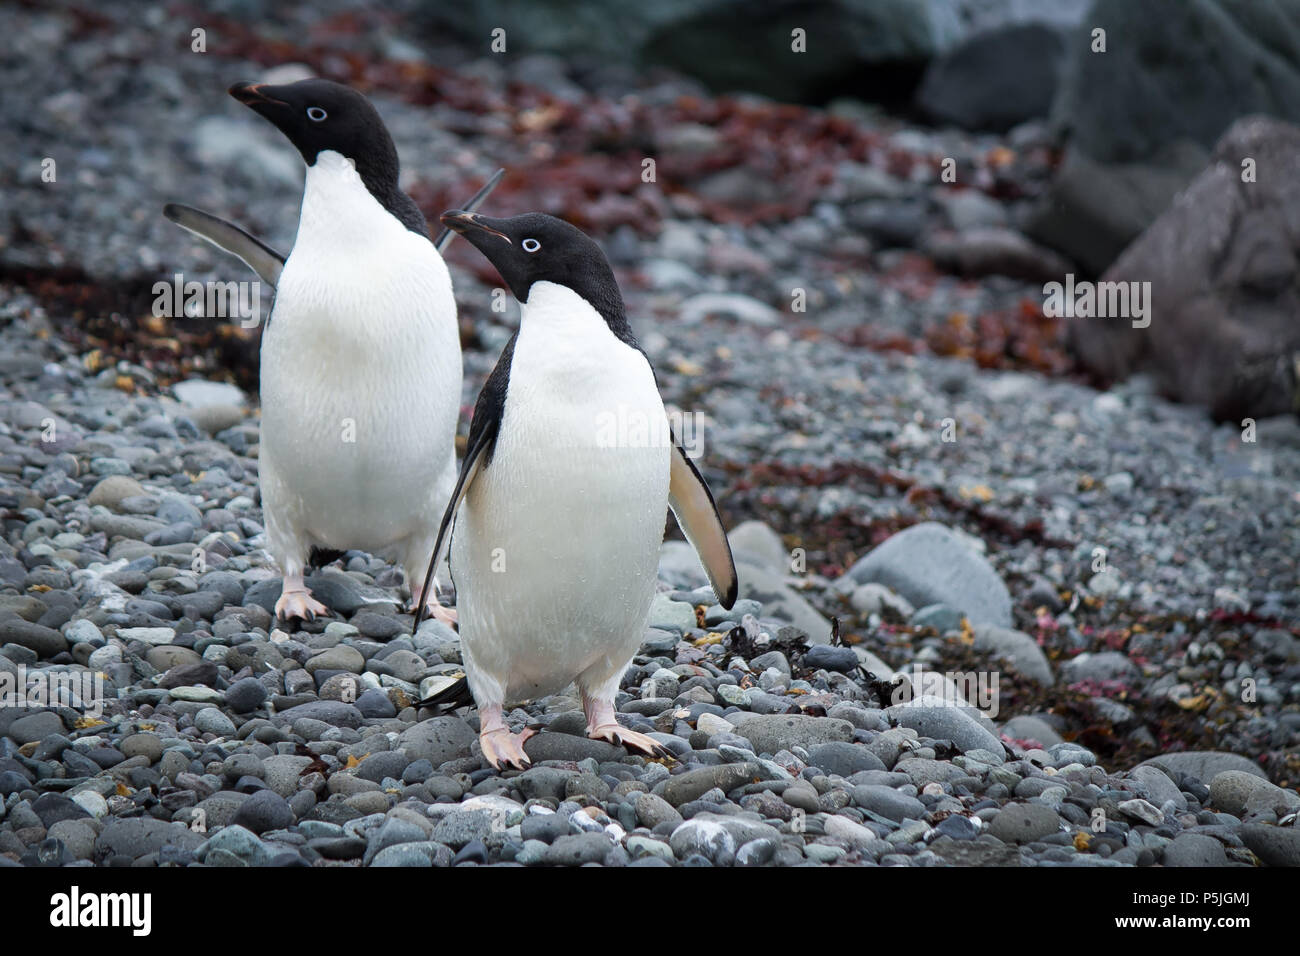 Pair of Adelie Penguins looking left - Stock Image